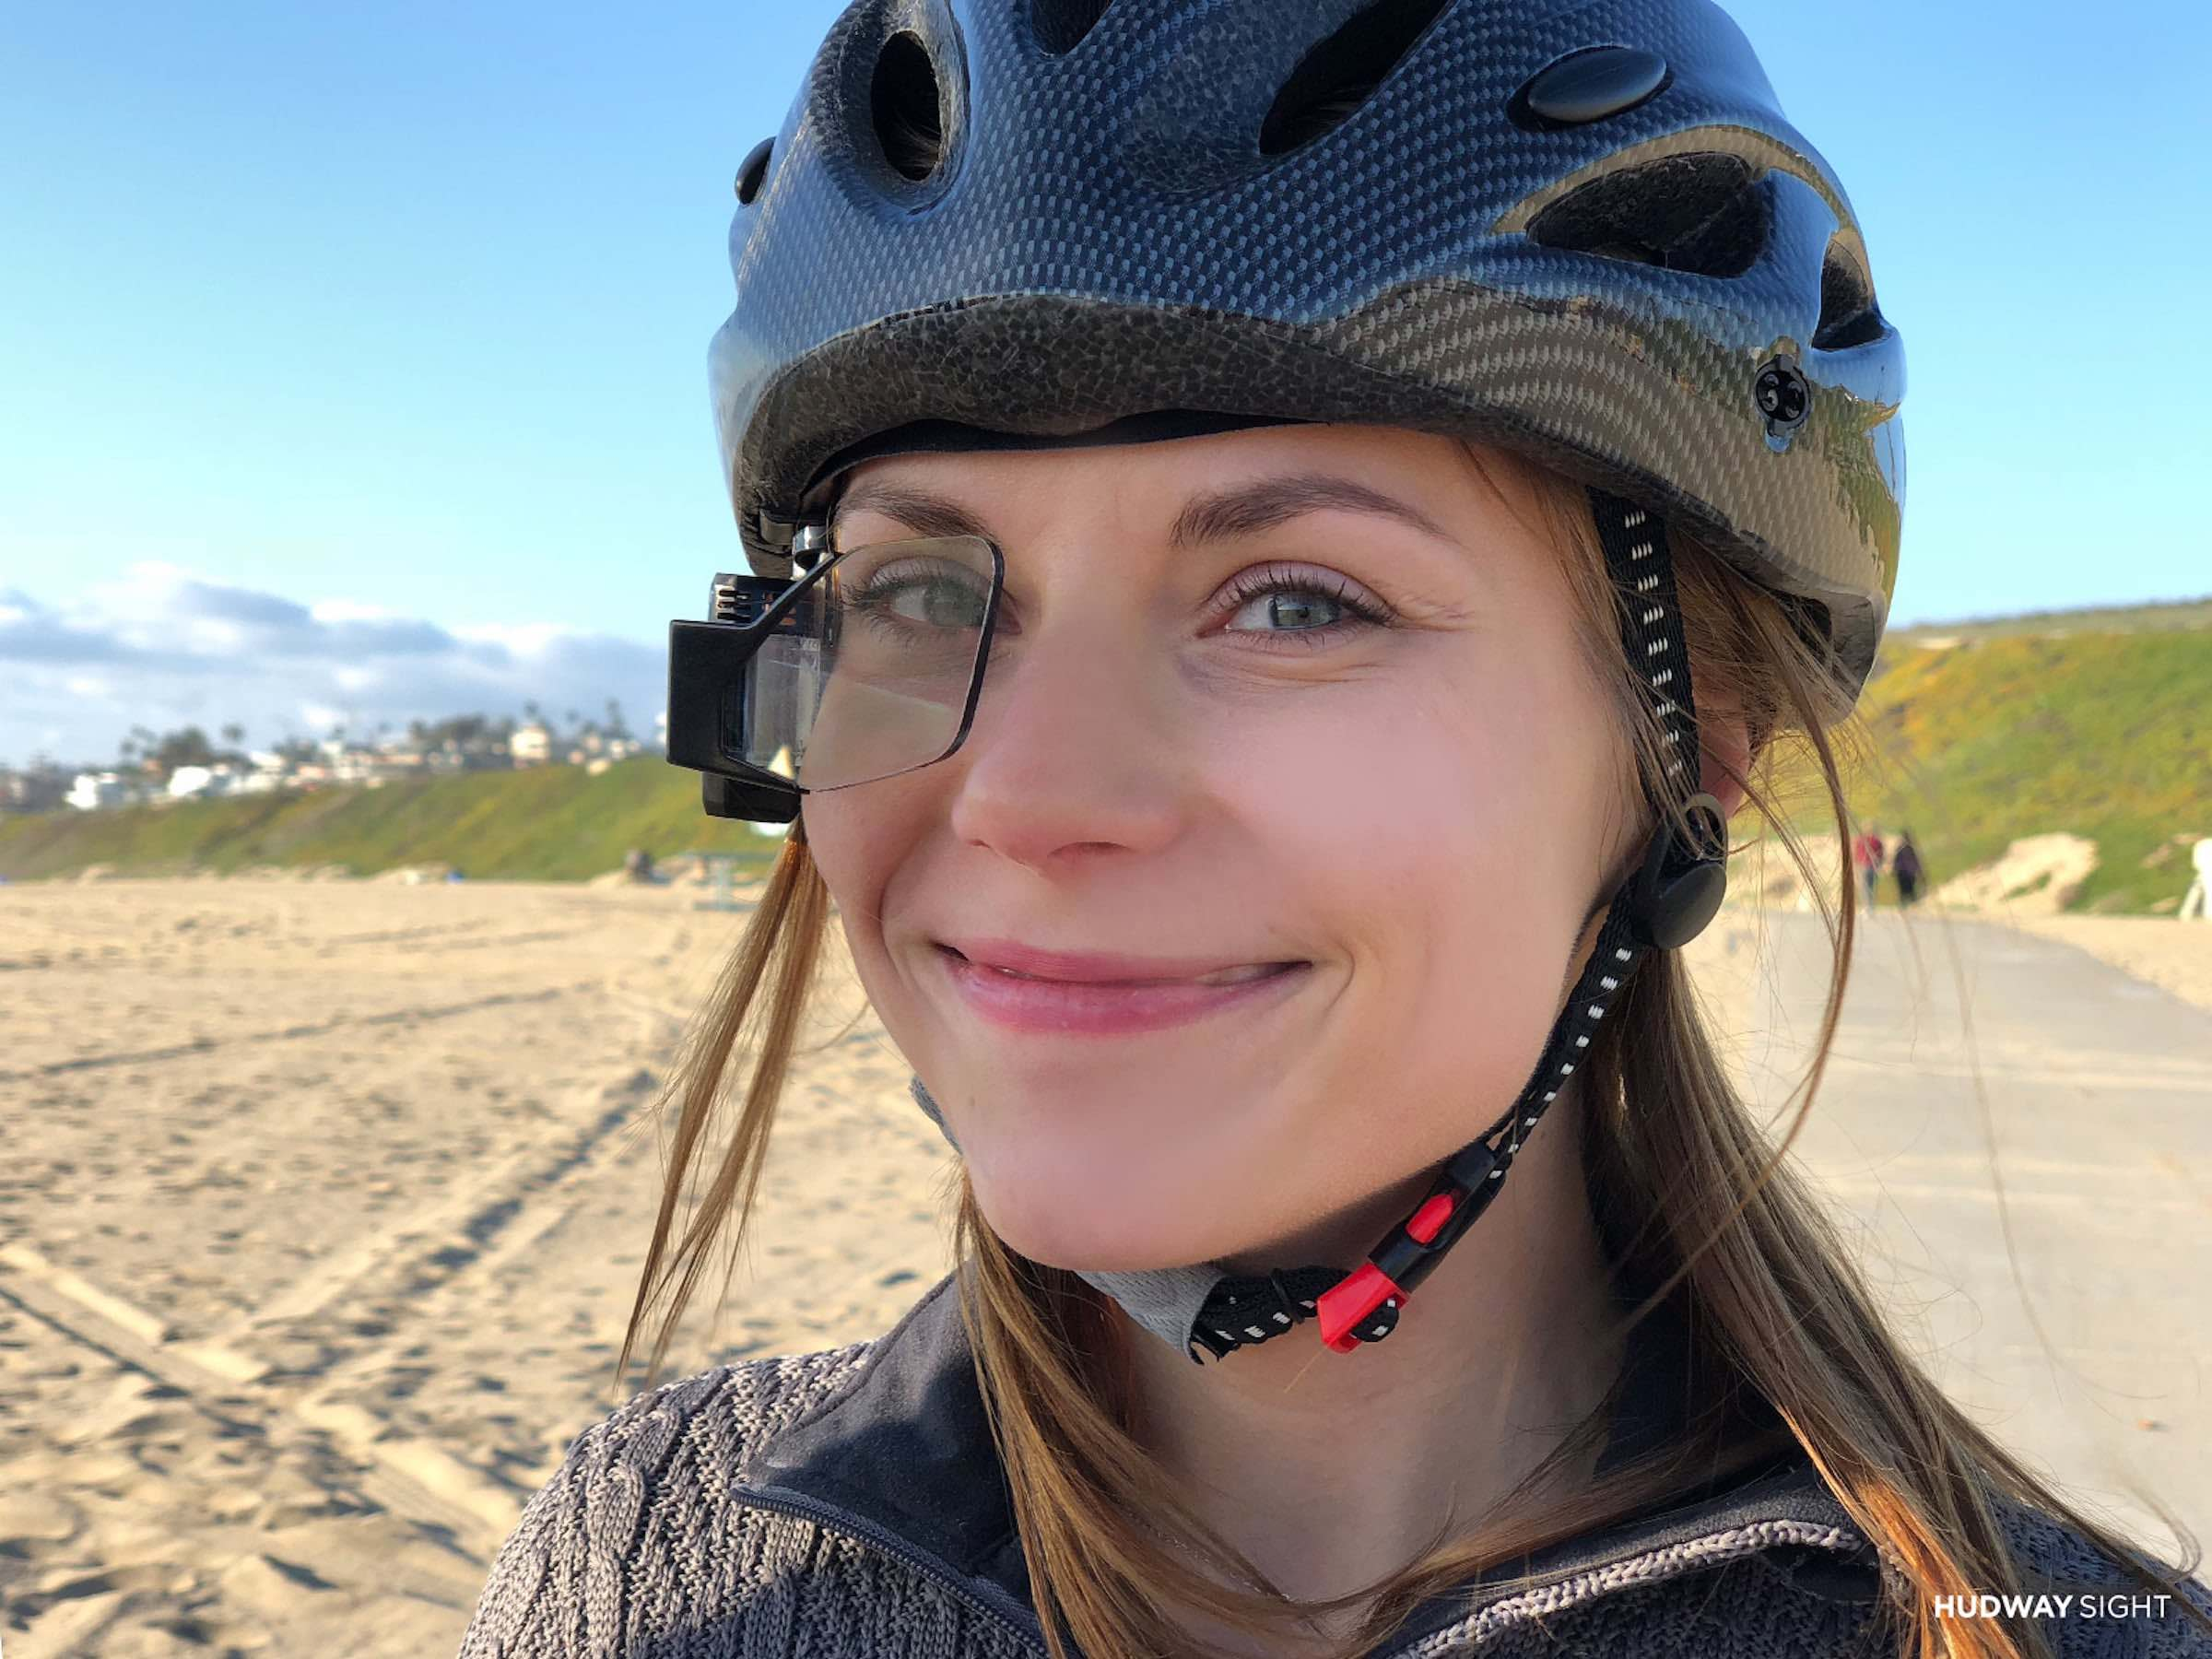 HUDWAY Sight Helmet-Mounted Heads-Up Display